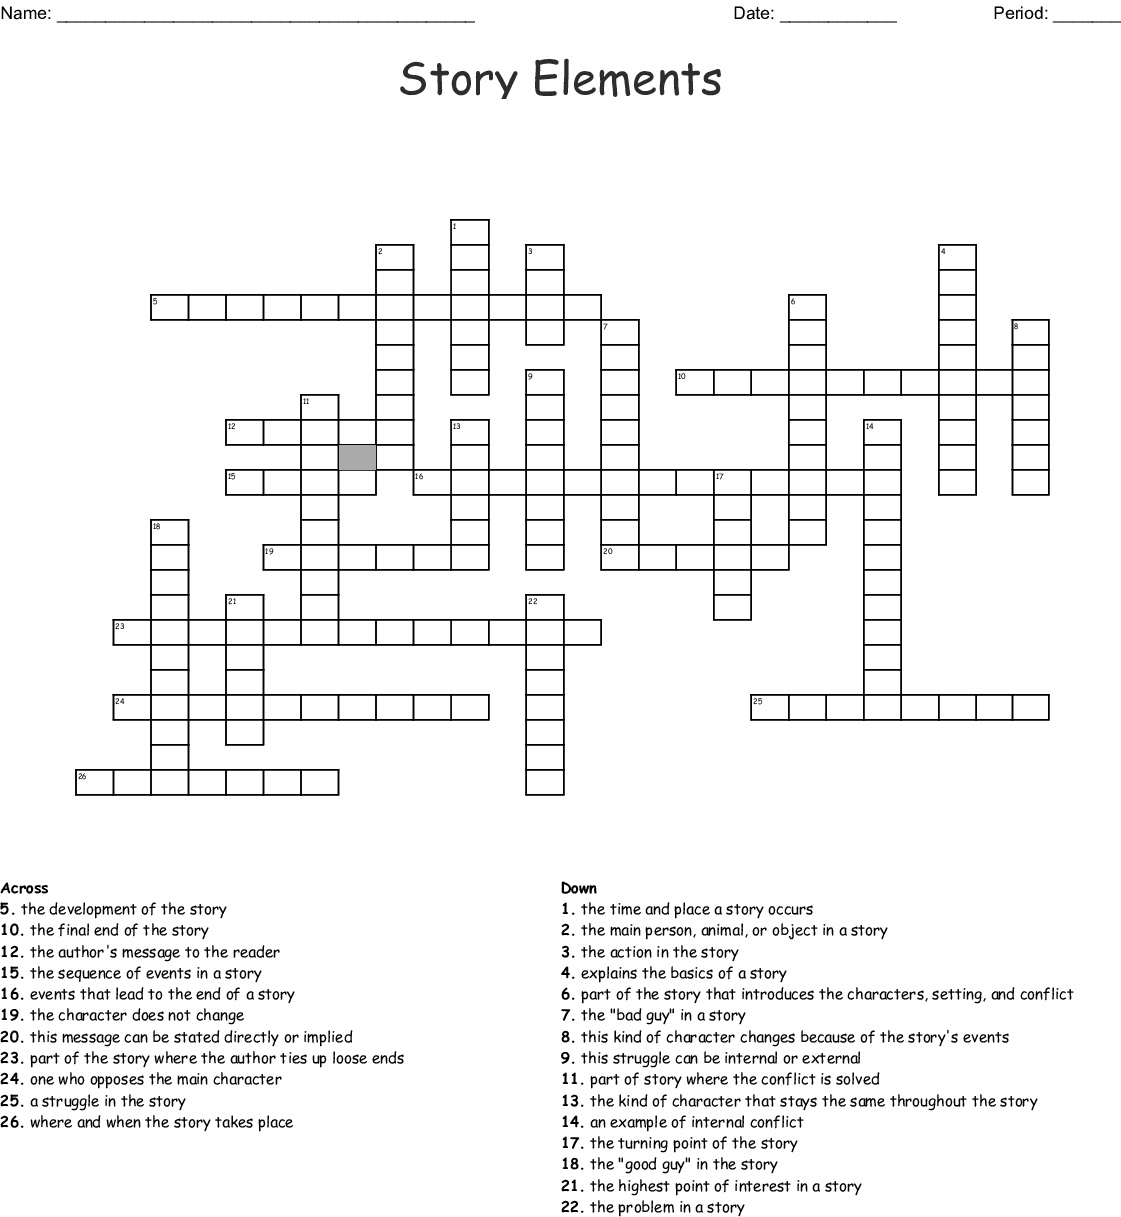 Story Elements Crossword